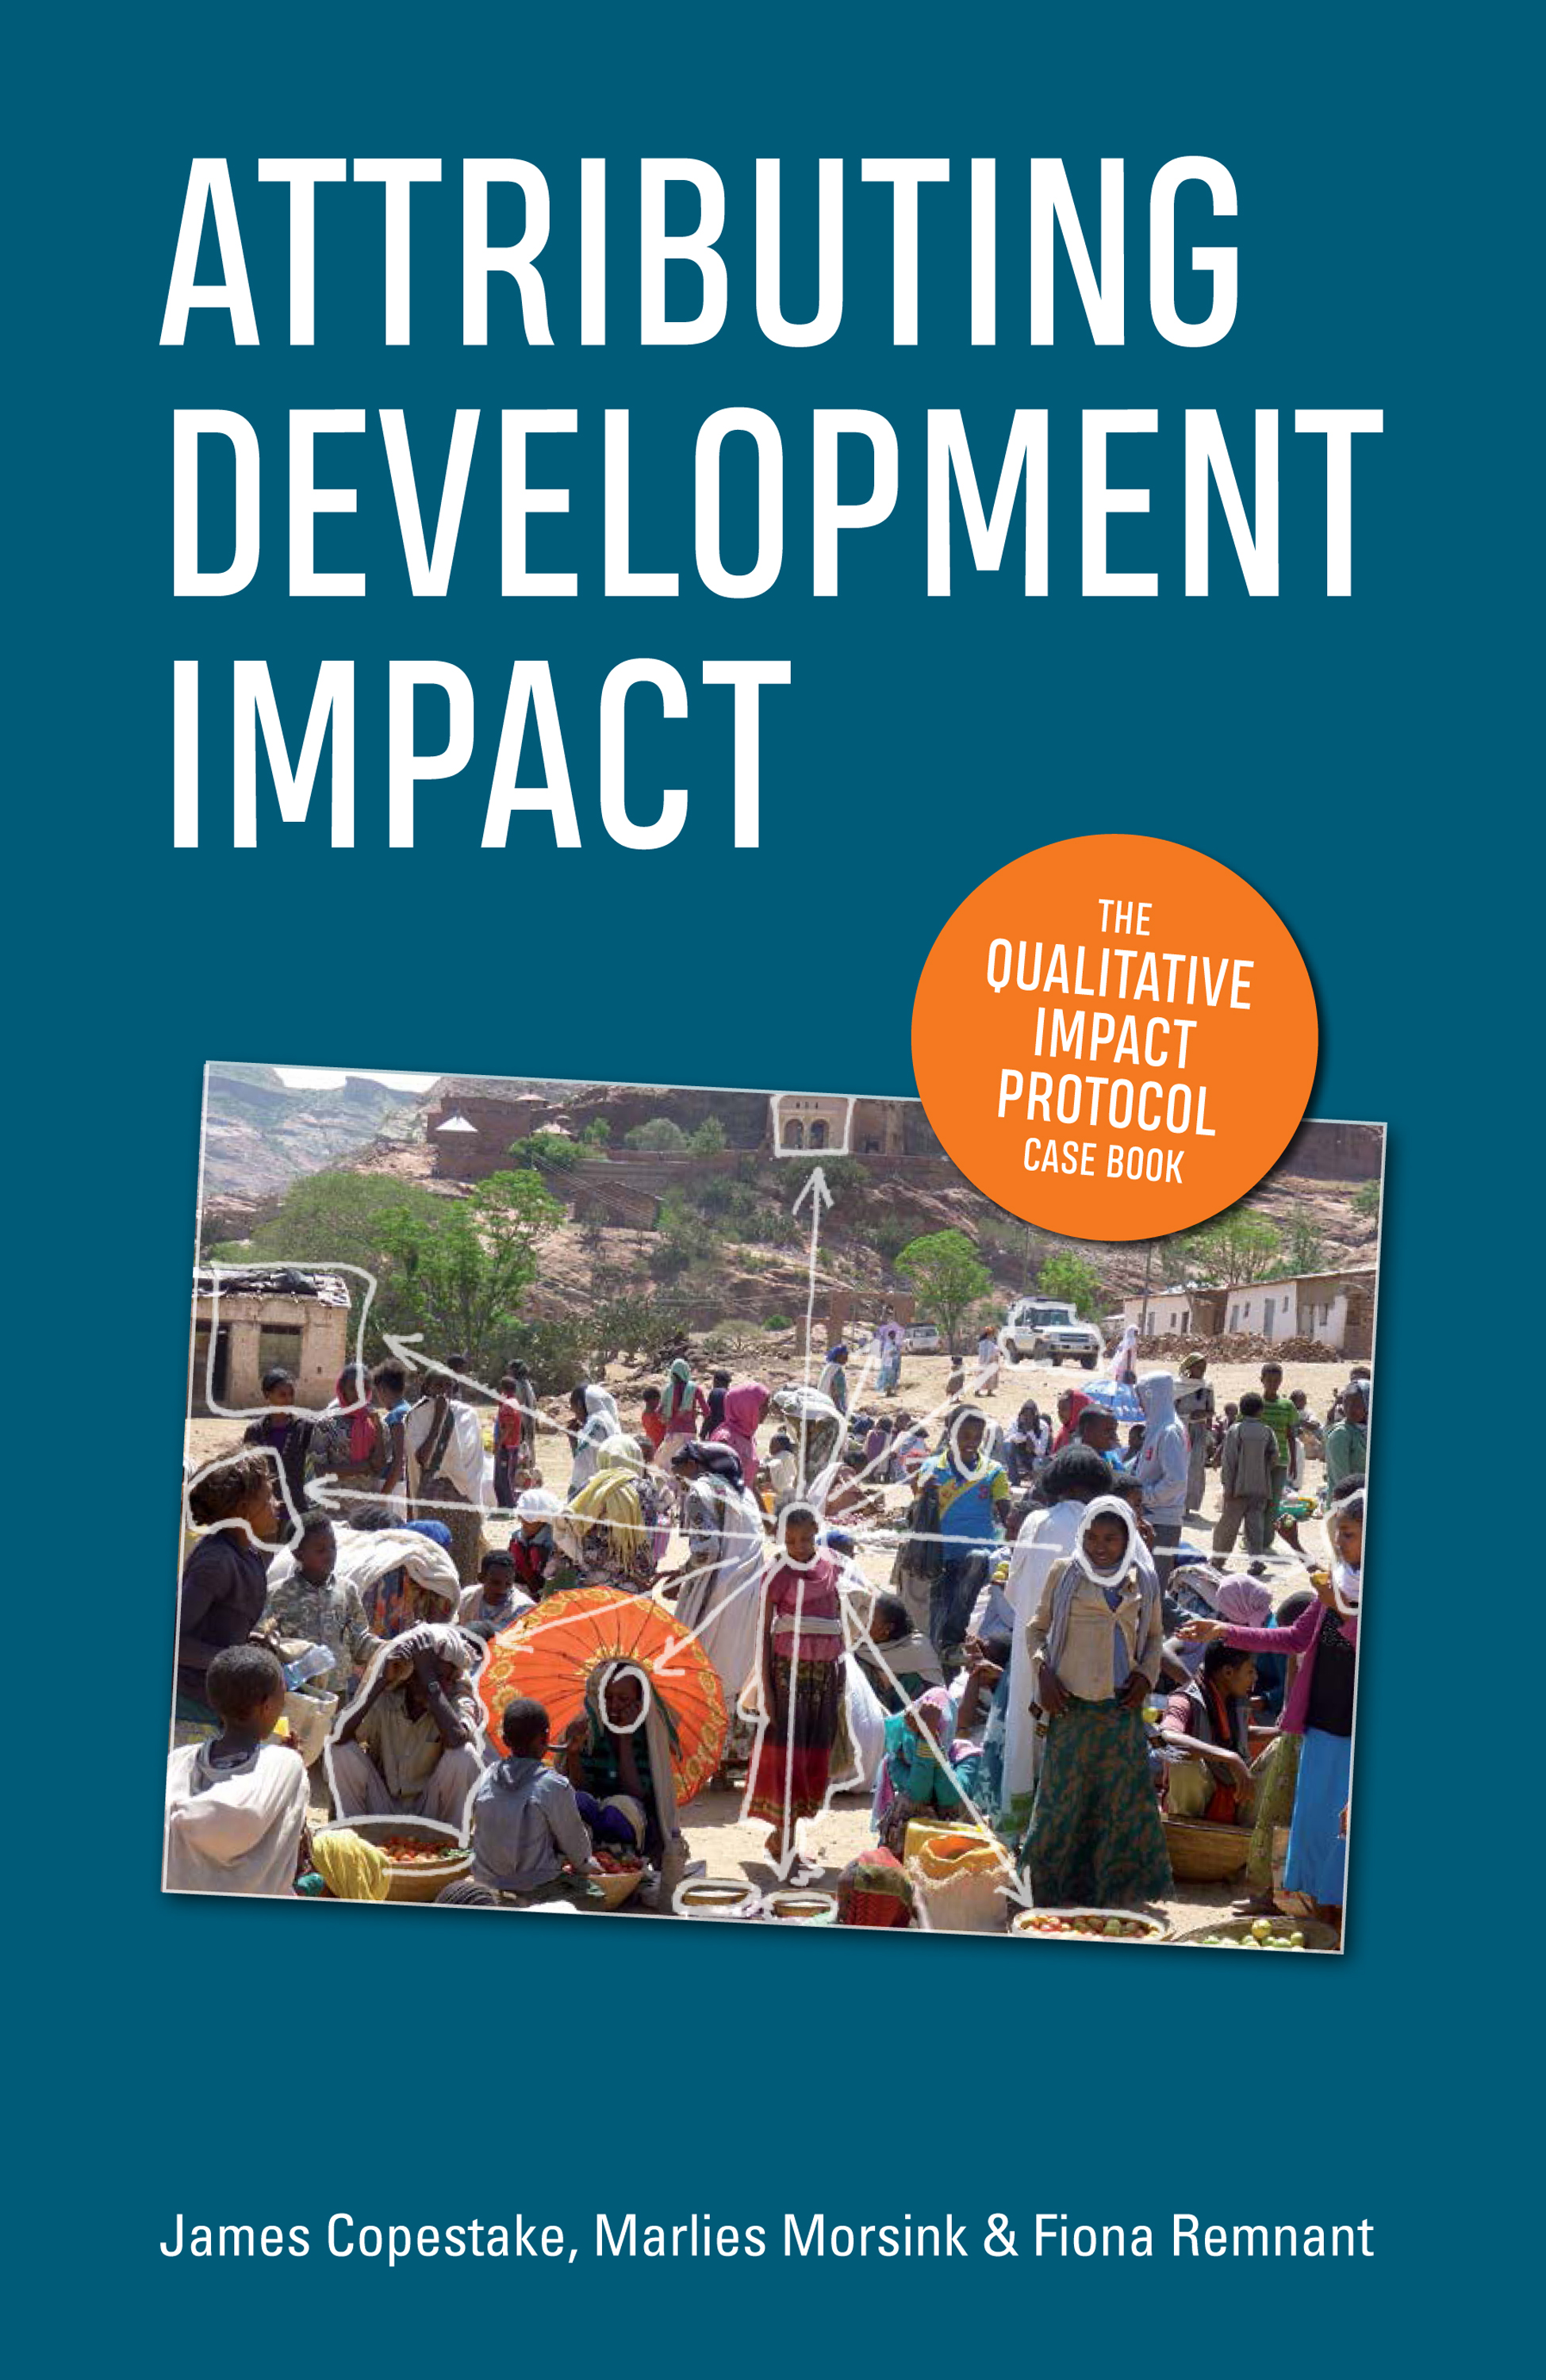 Attributing Development Impact